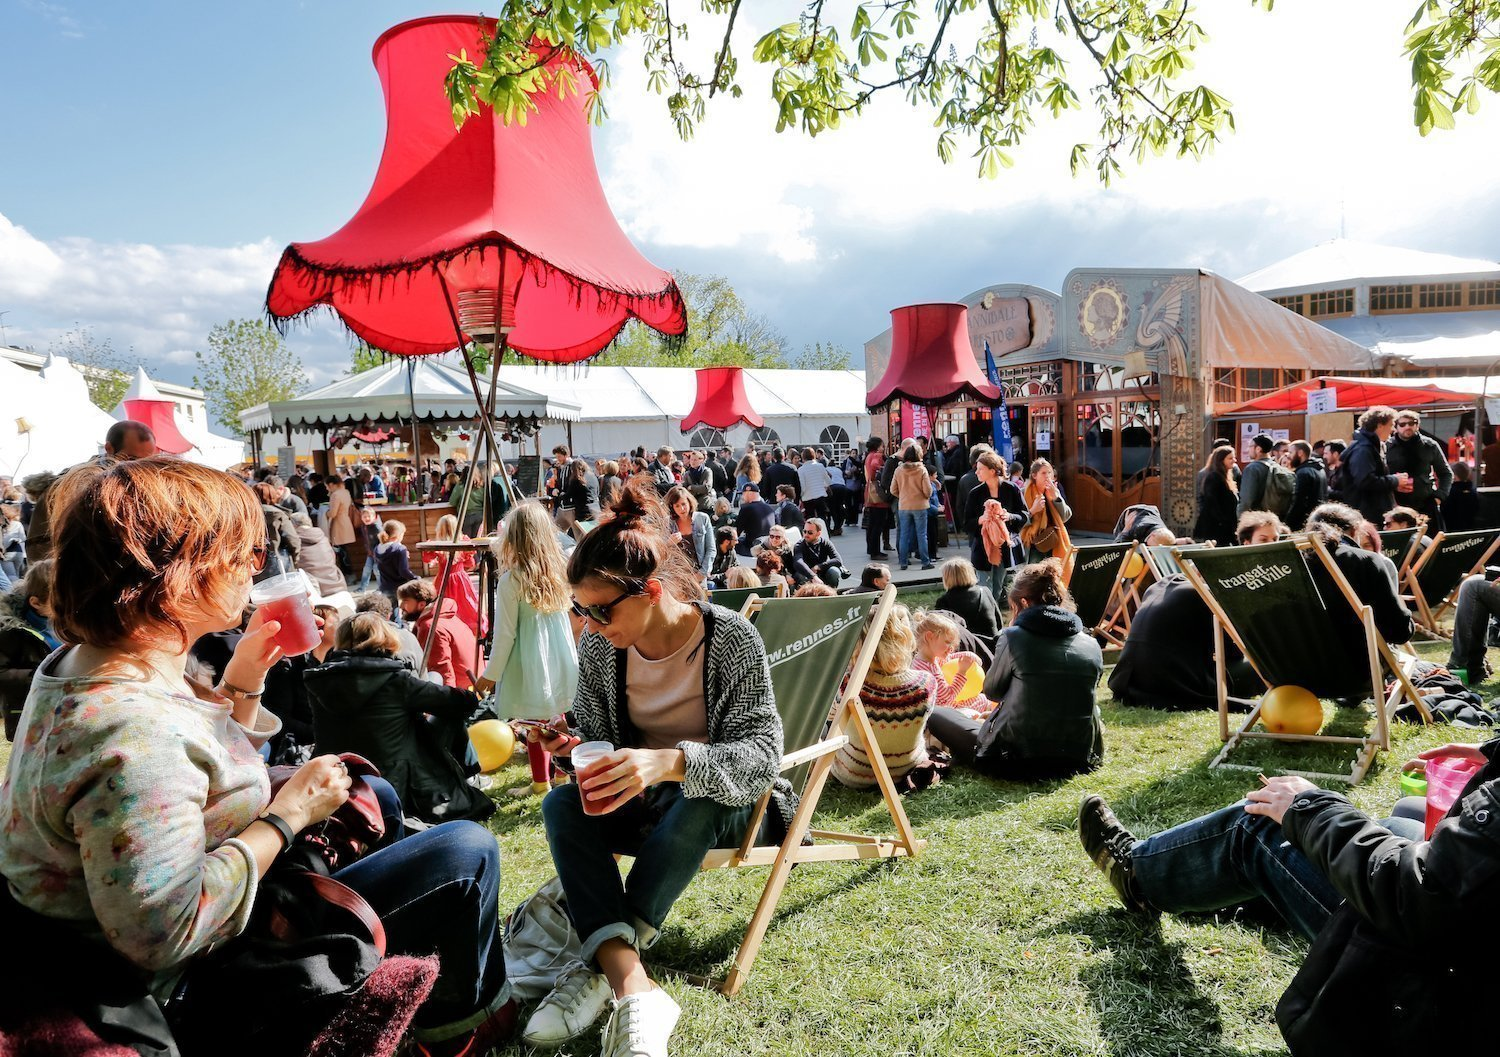 A festival that marks the beginning of spring